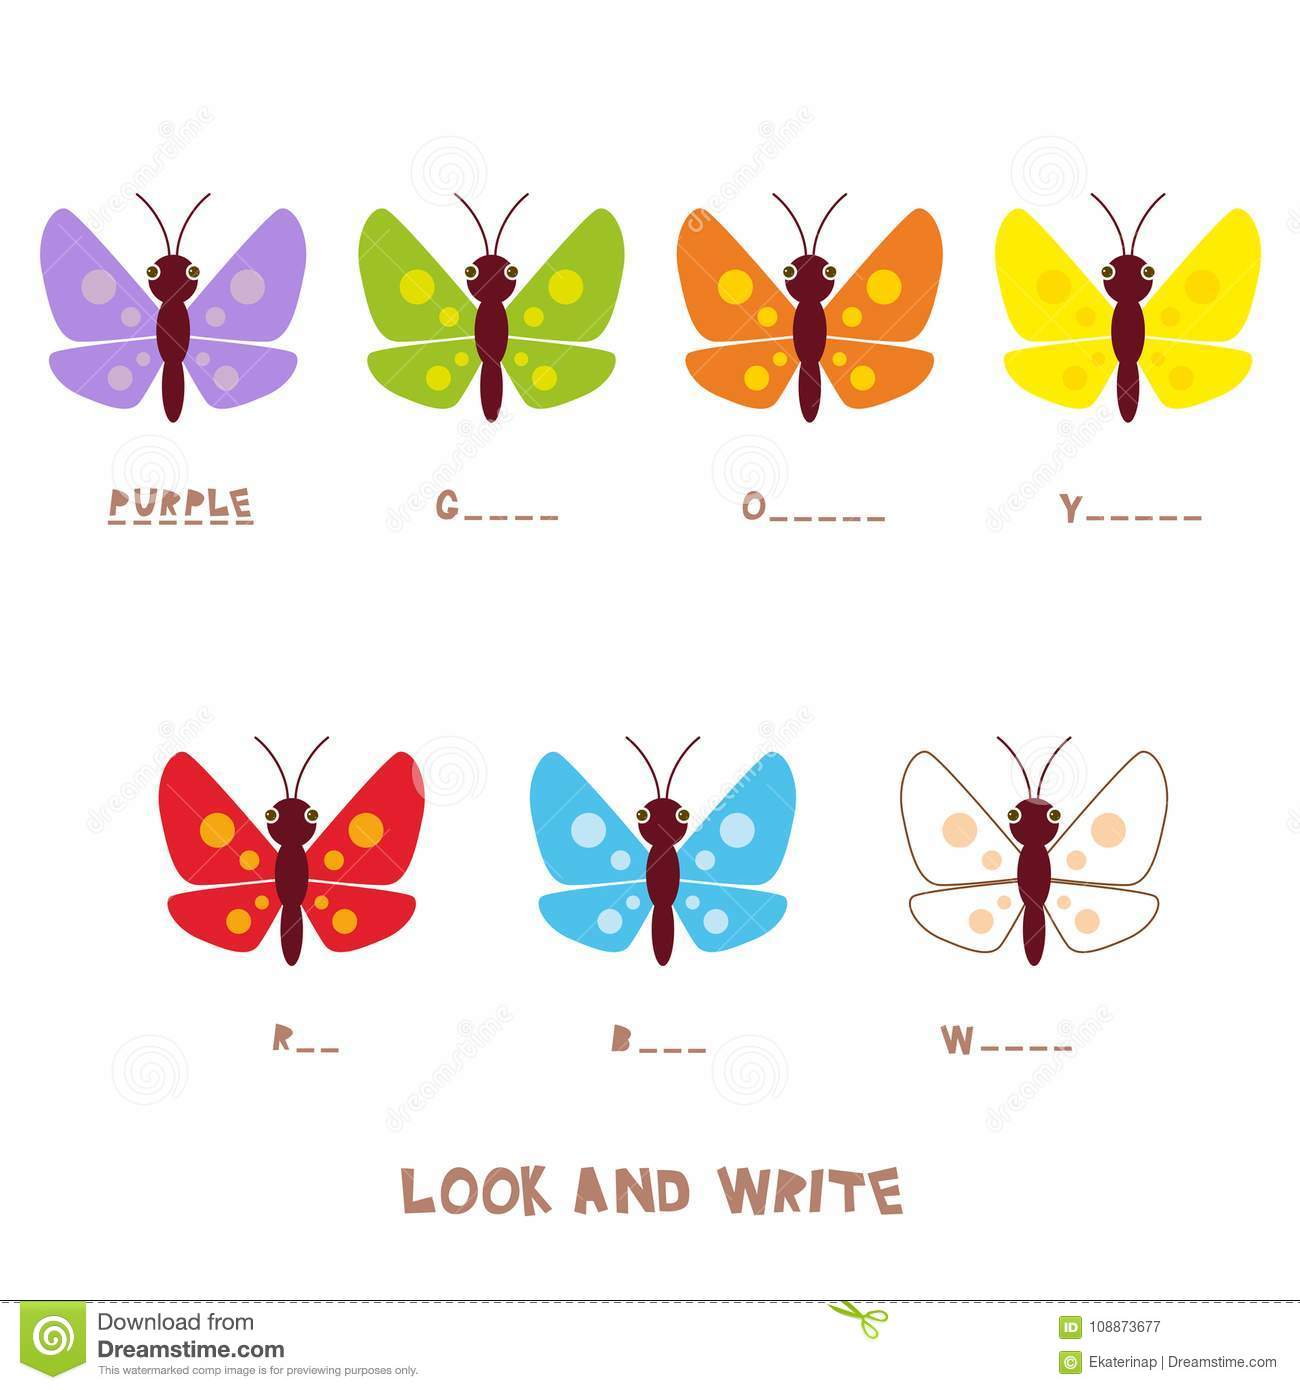 Look And Write Multicolored Butterflies Kids Words